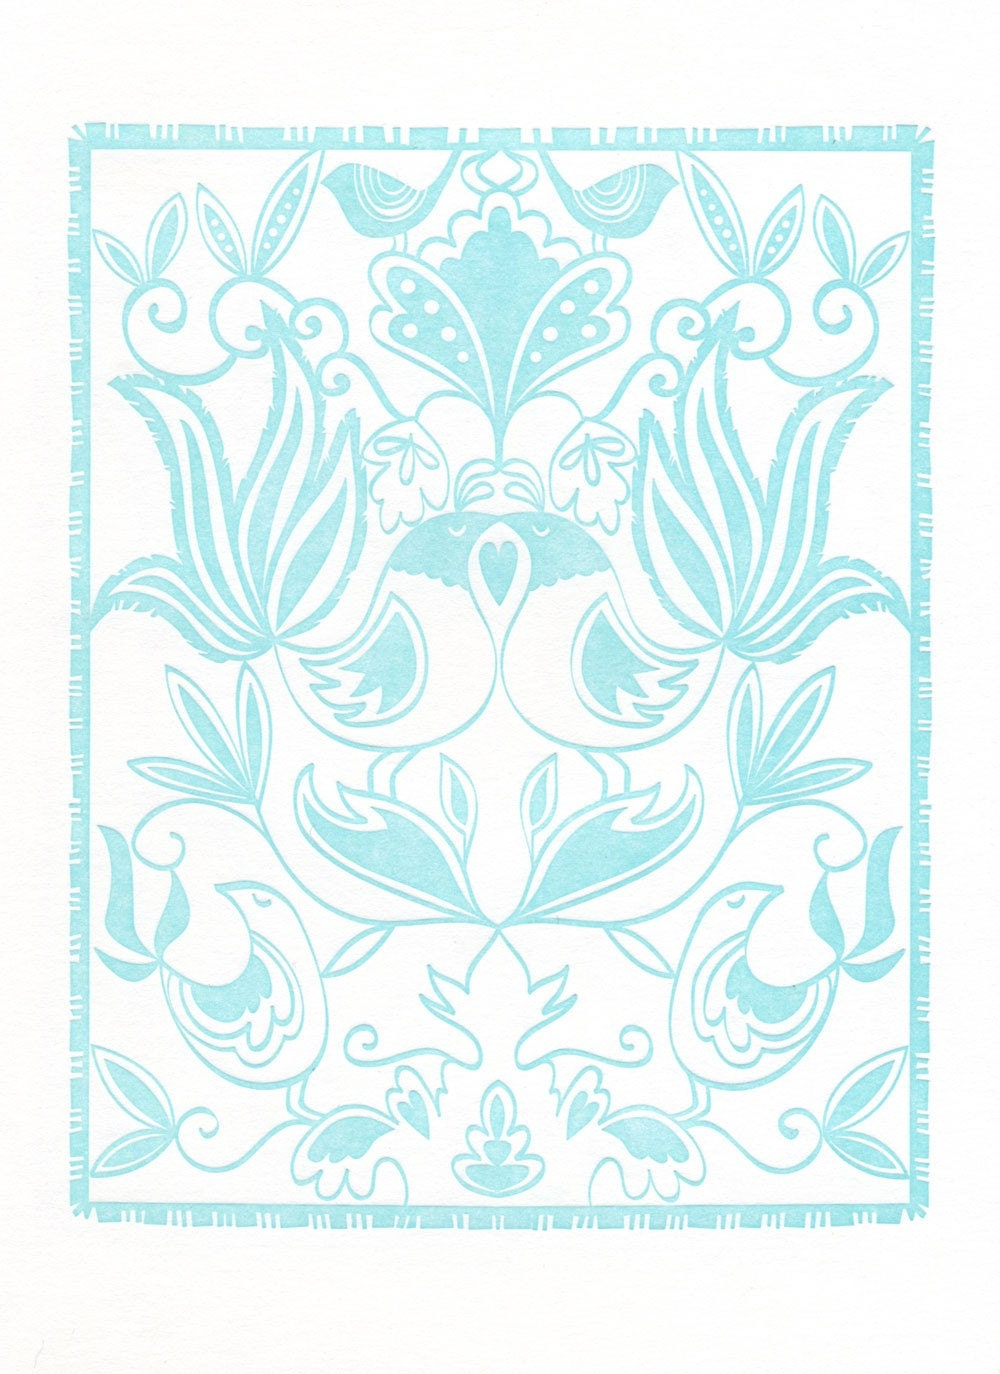 Light Blue Birds Wycinanki